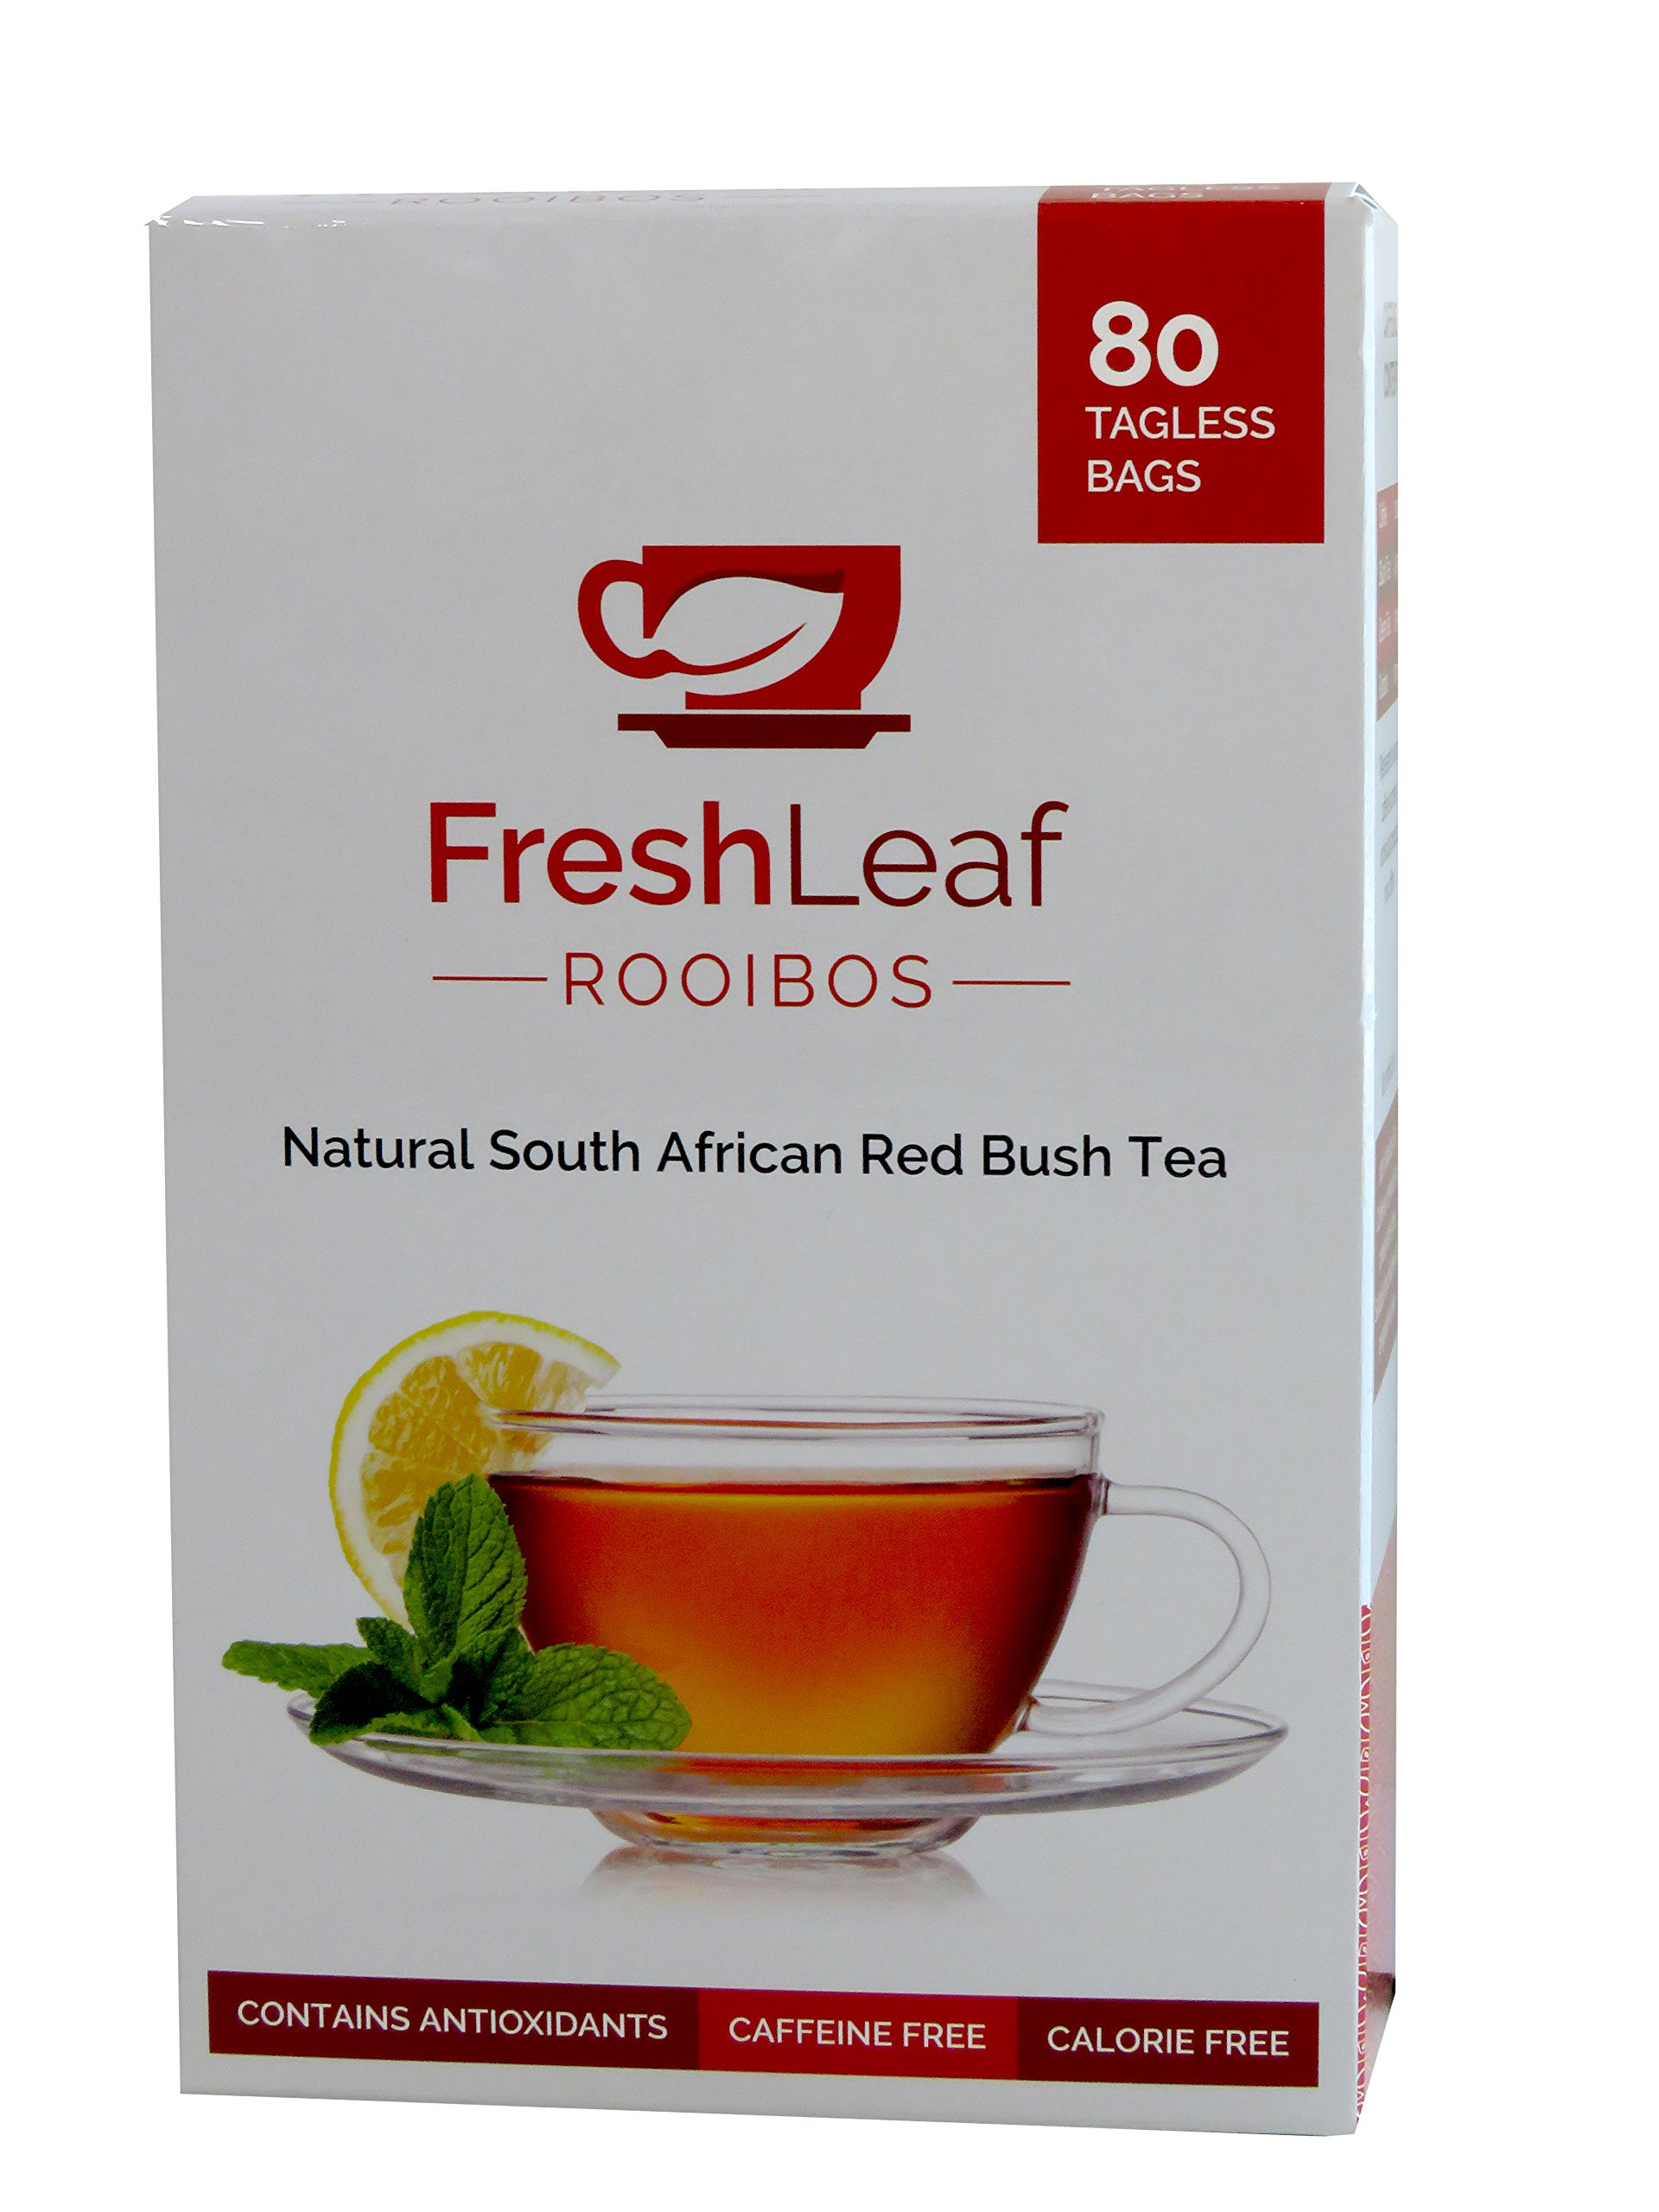 FRESHLEAF Rooibos Tea - 80 Red Tea Bags, Red Tea Detox, 100% Pure South African Origin Red Tea, Caffeine & Calorie Free, Sustainably Farmed, GMO Free, Redbush Tea, Herbal Tea Drink by FreshLeaf Rooibos Tea